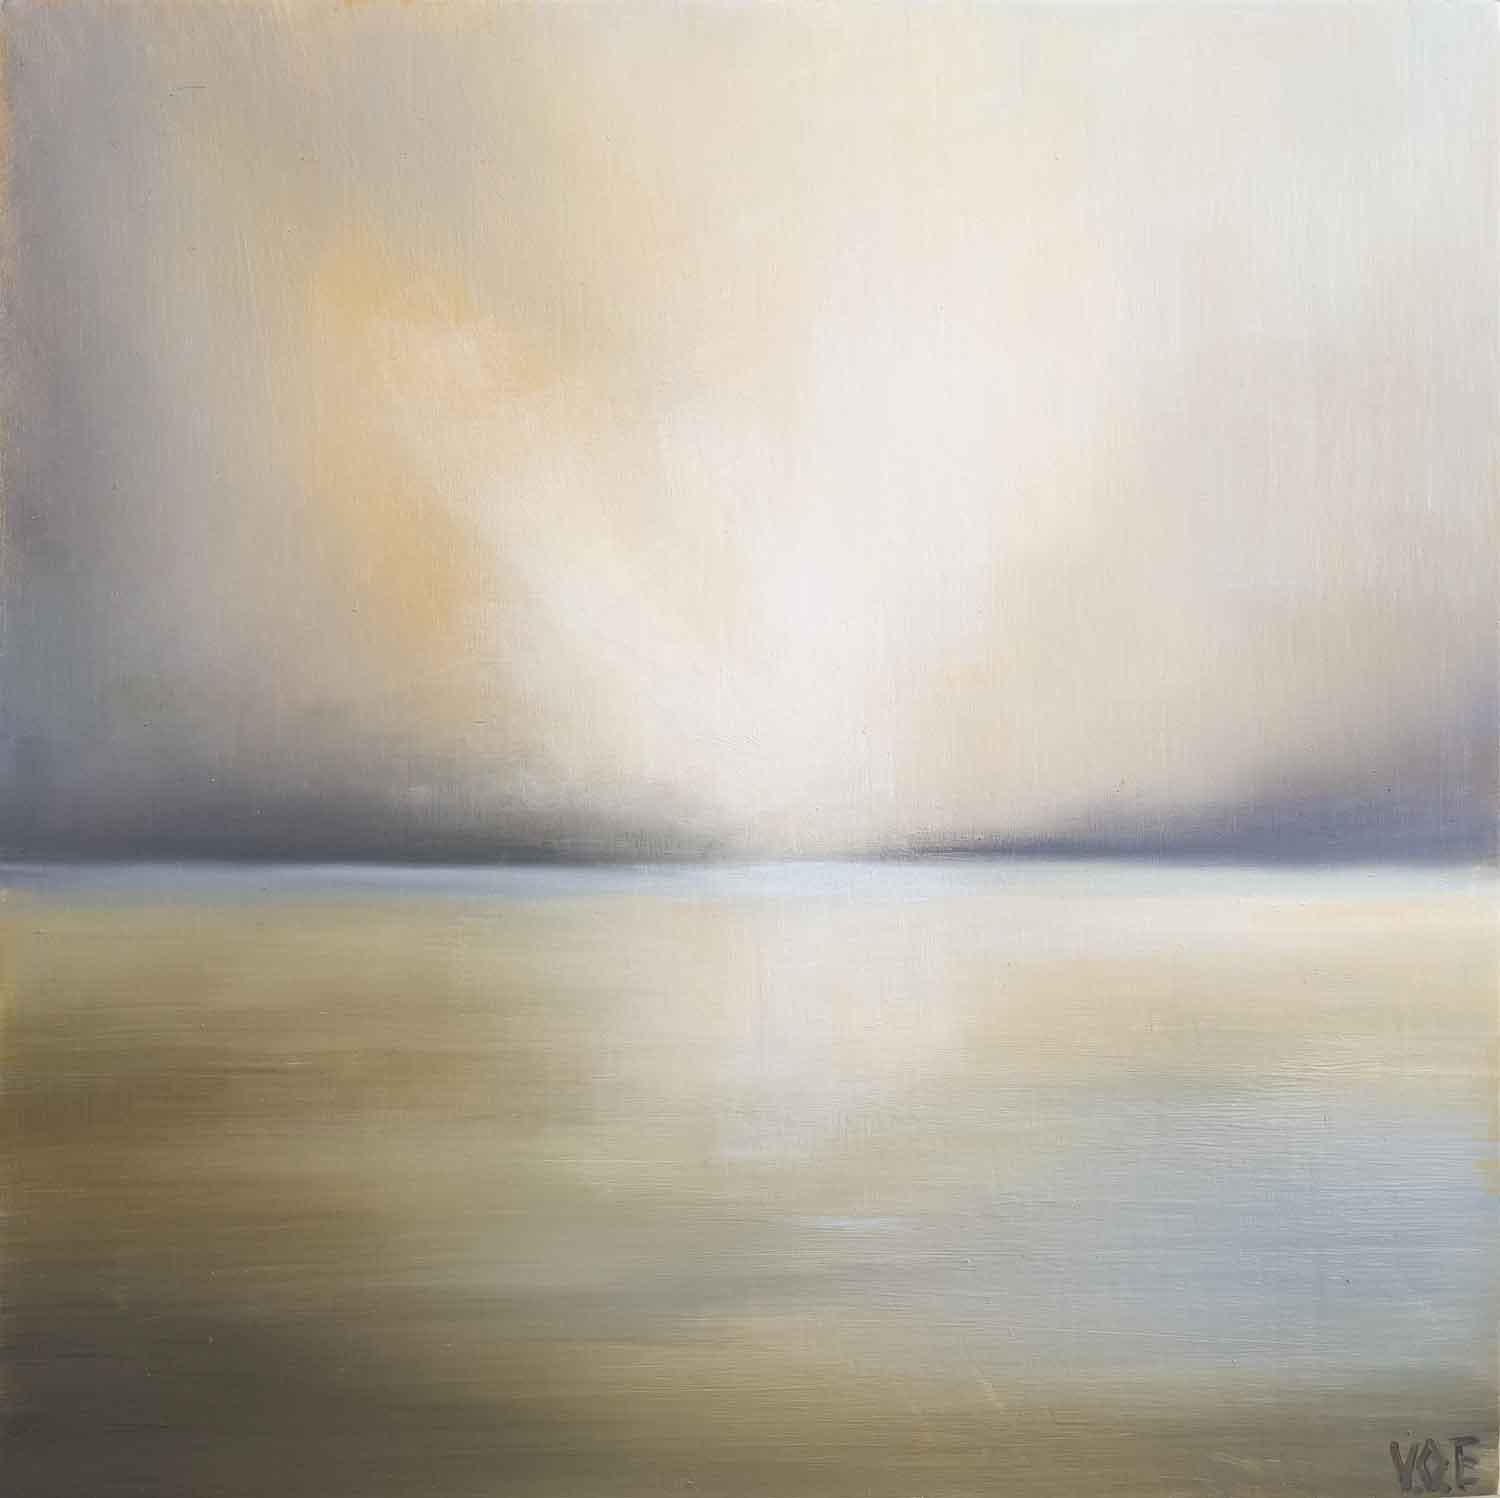 As The Tide Retreats. Imaginary landscape Painting By Victoria Orr Ewing